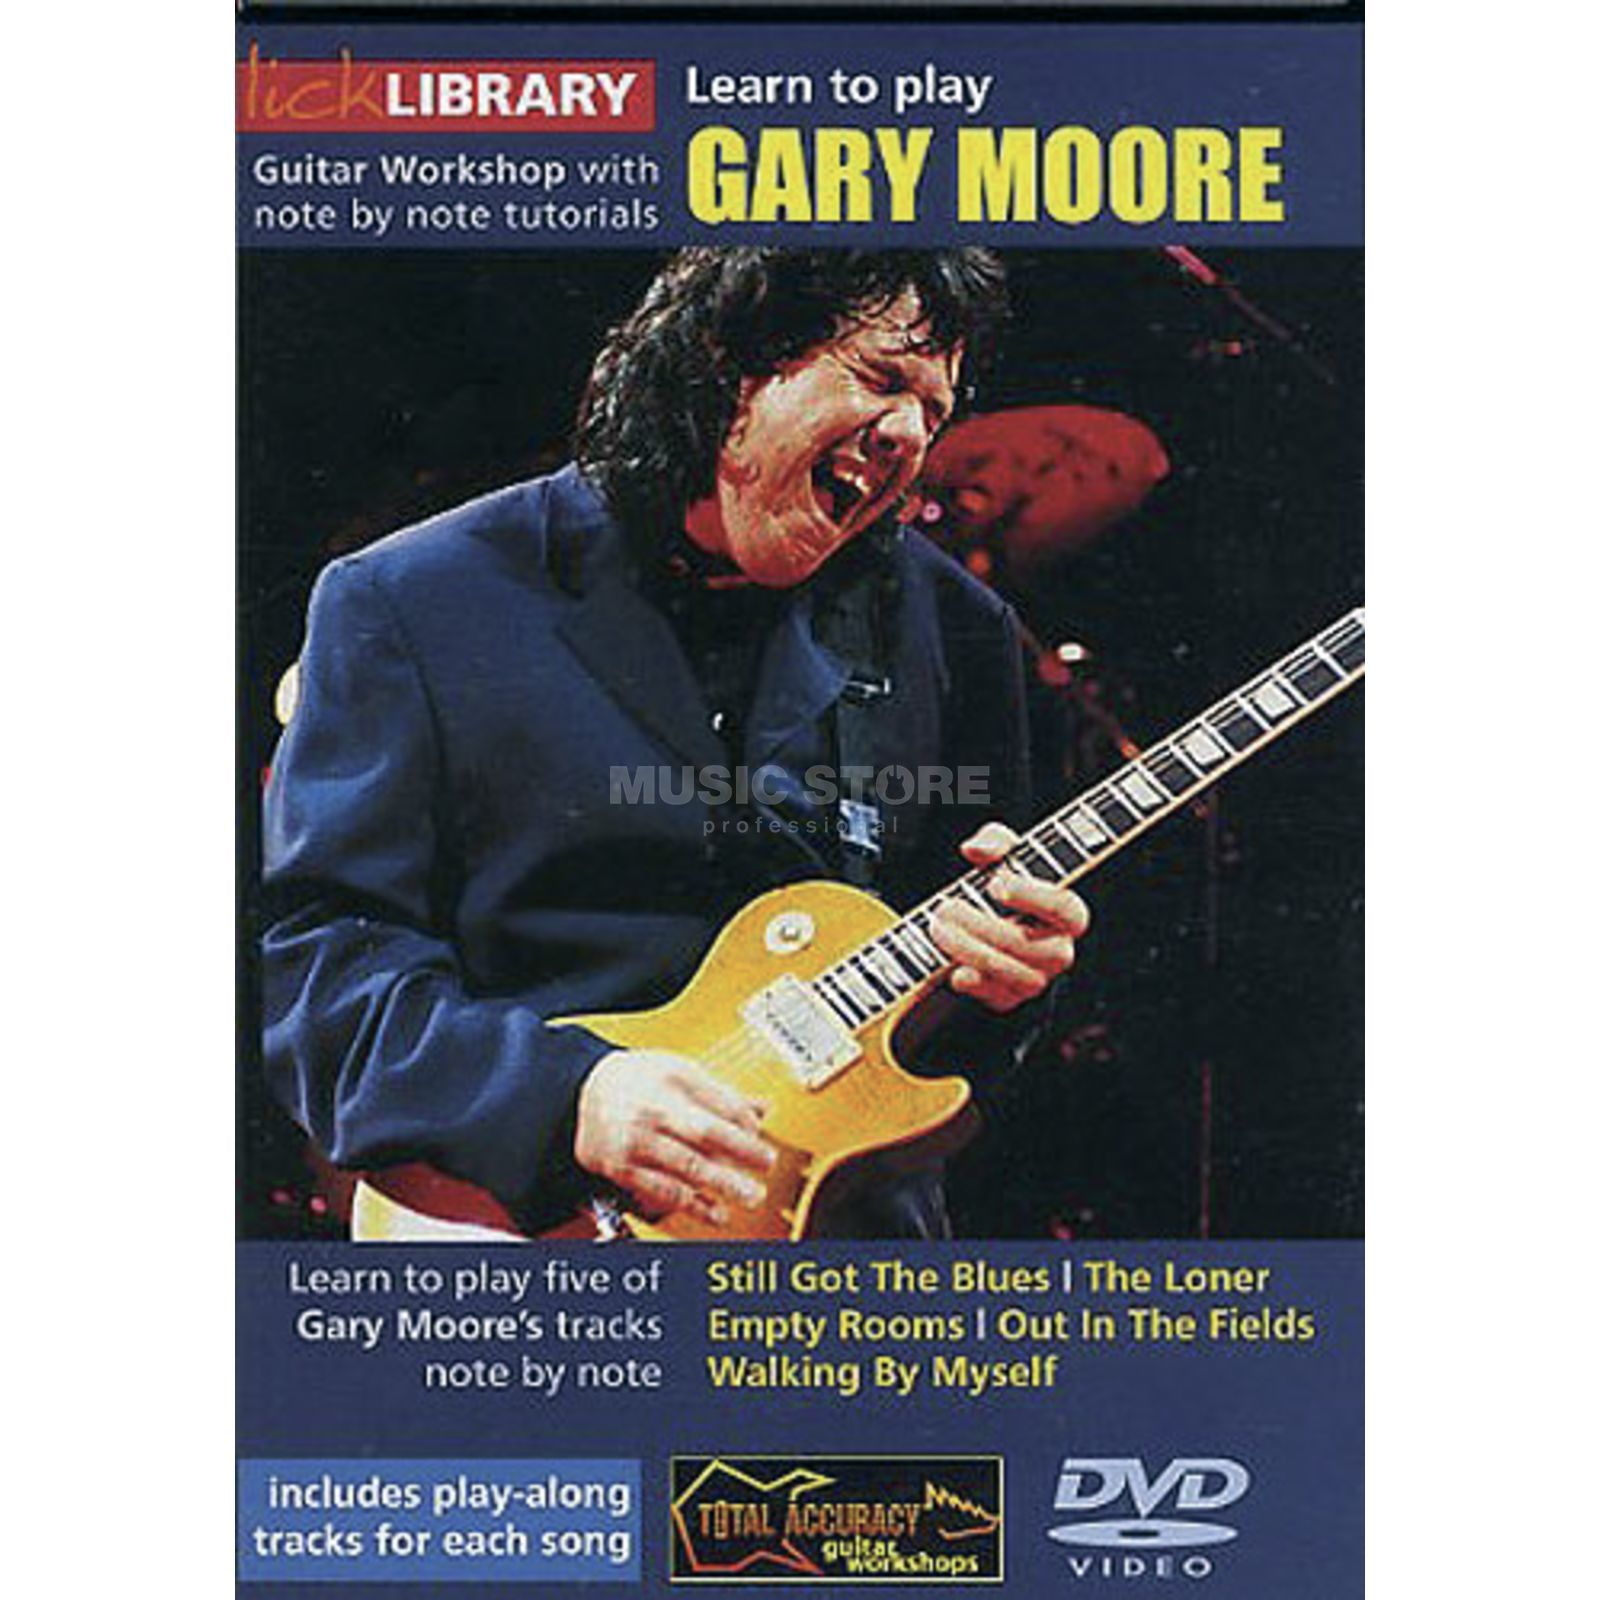 Roadrock International Lick Library: Learn To Play Gary Moore DVD Produktbillede